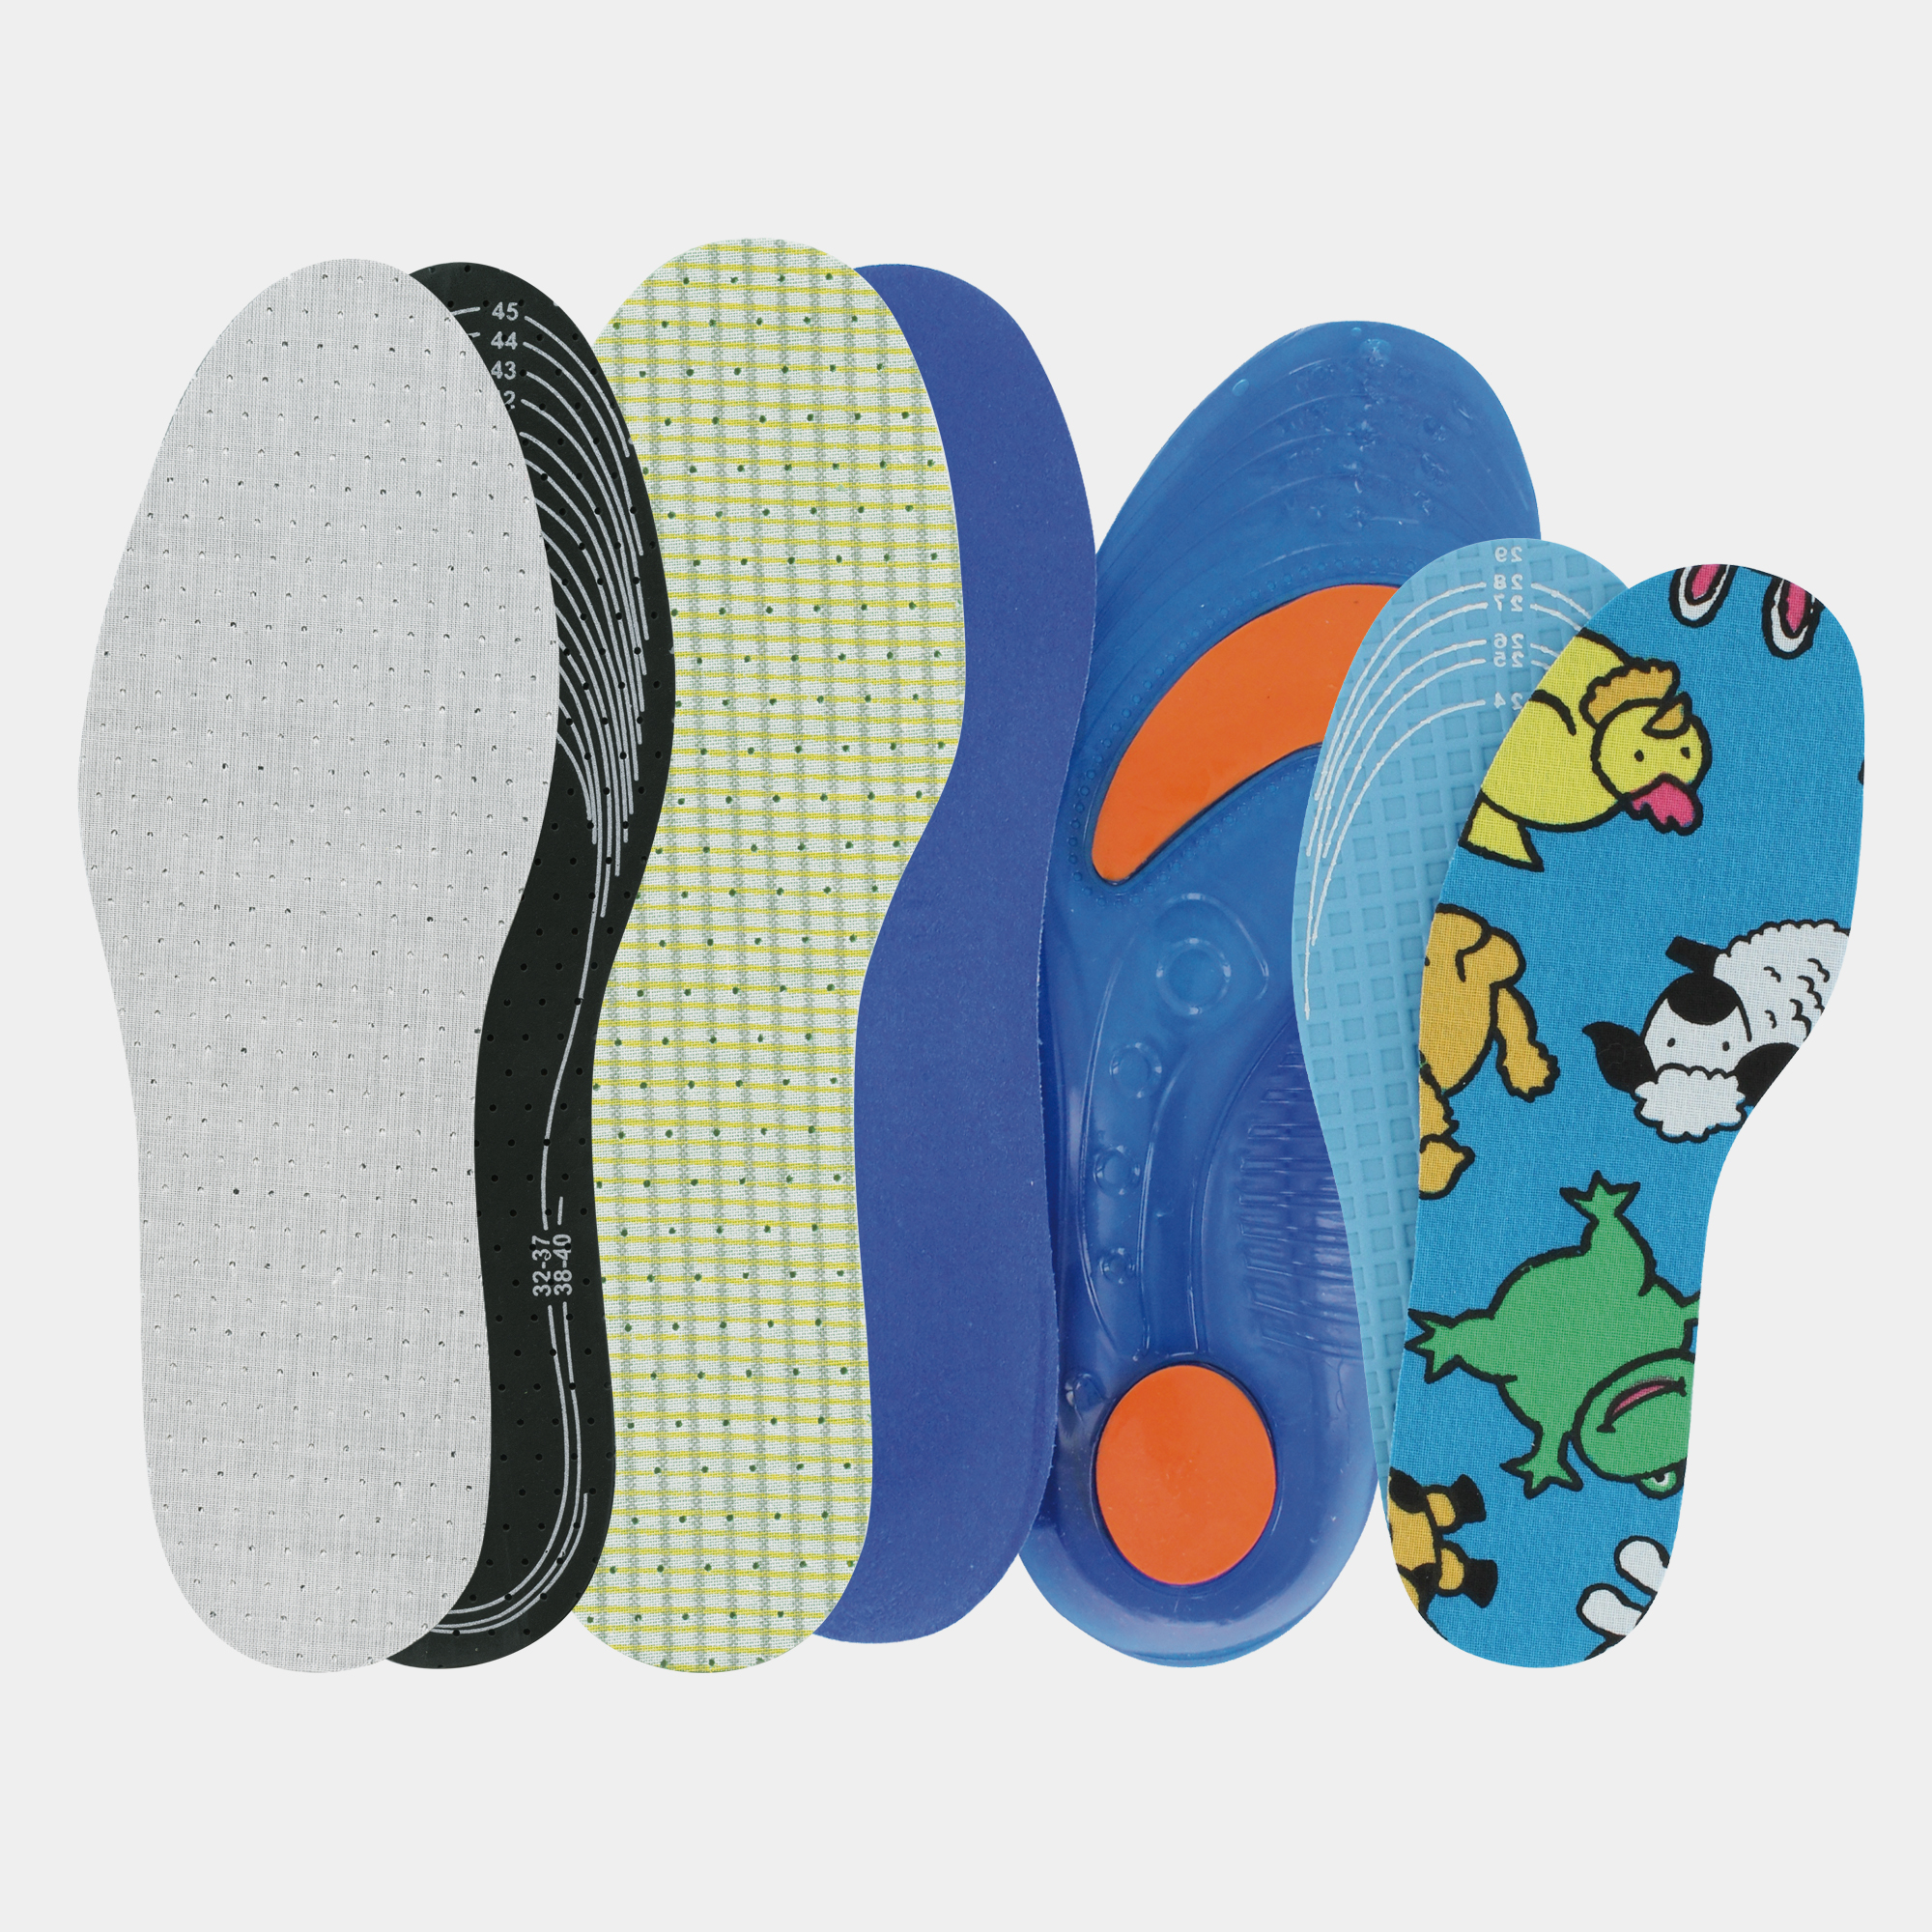 VARIOUS INSOLES